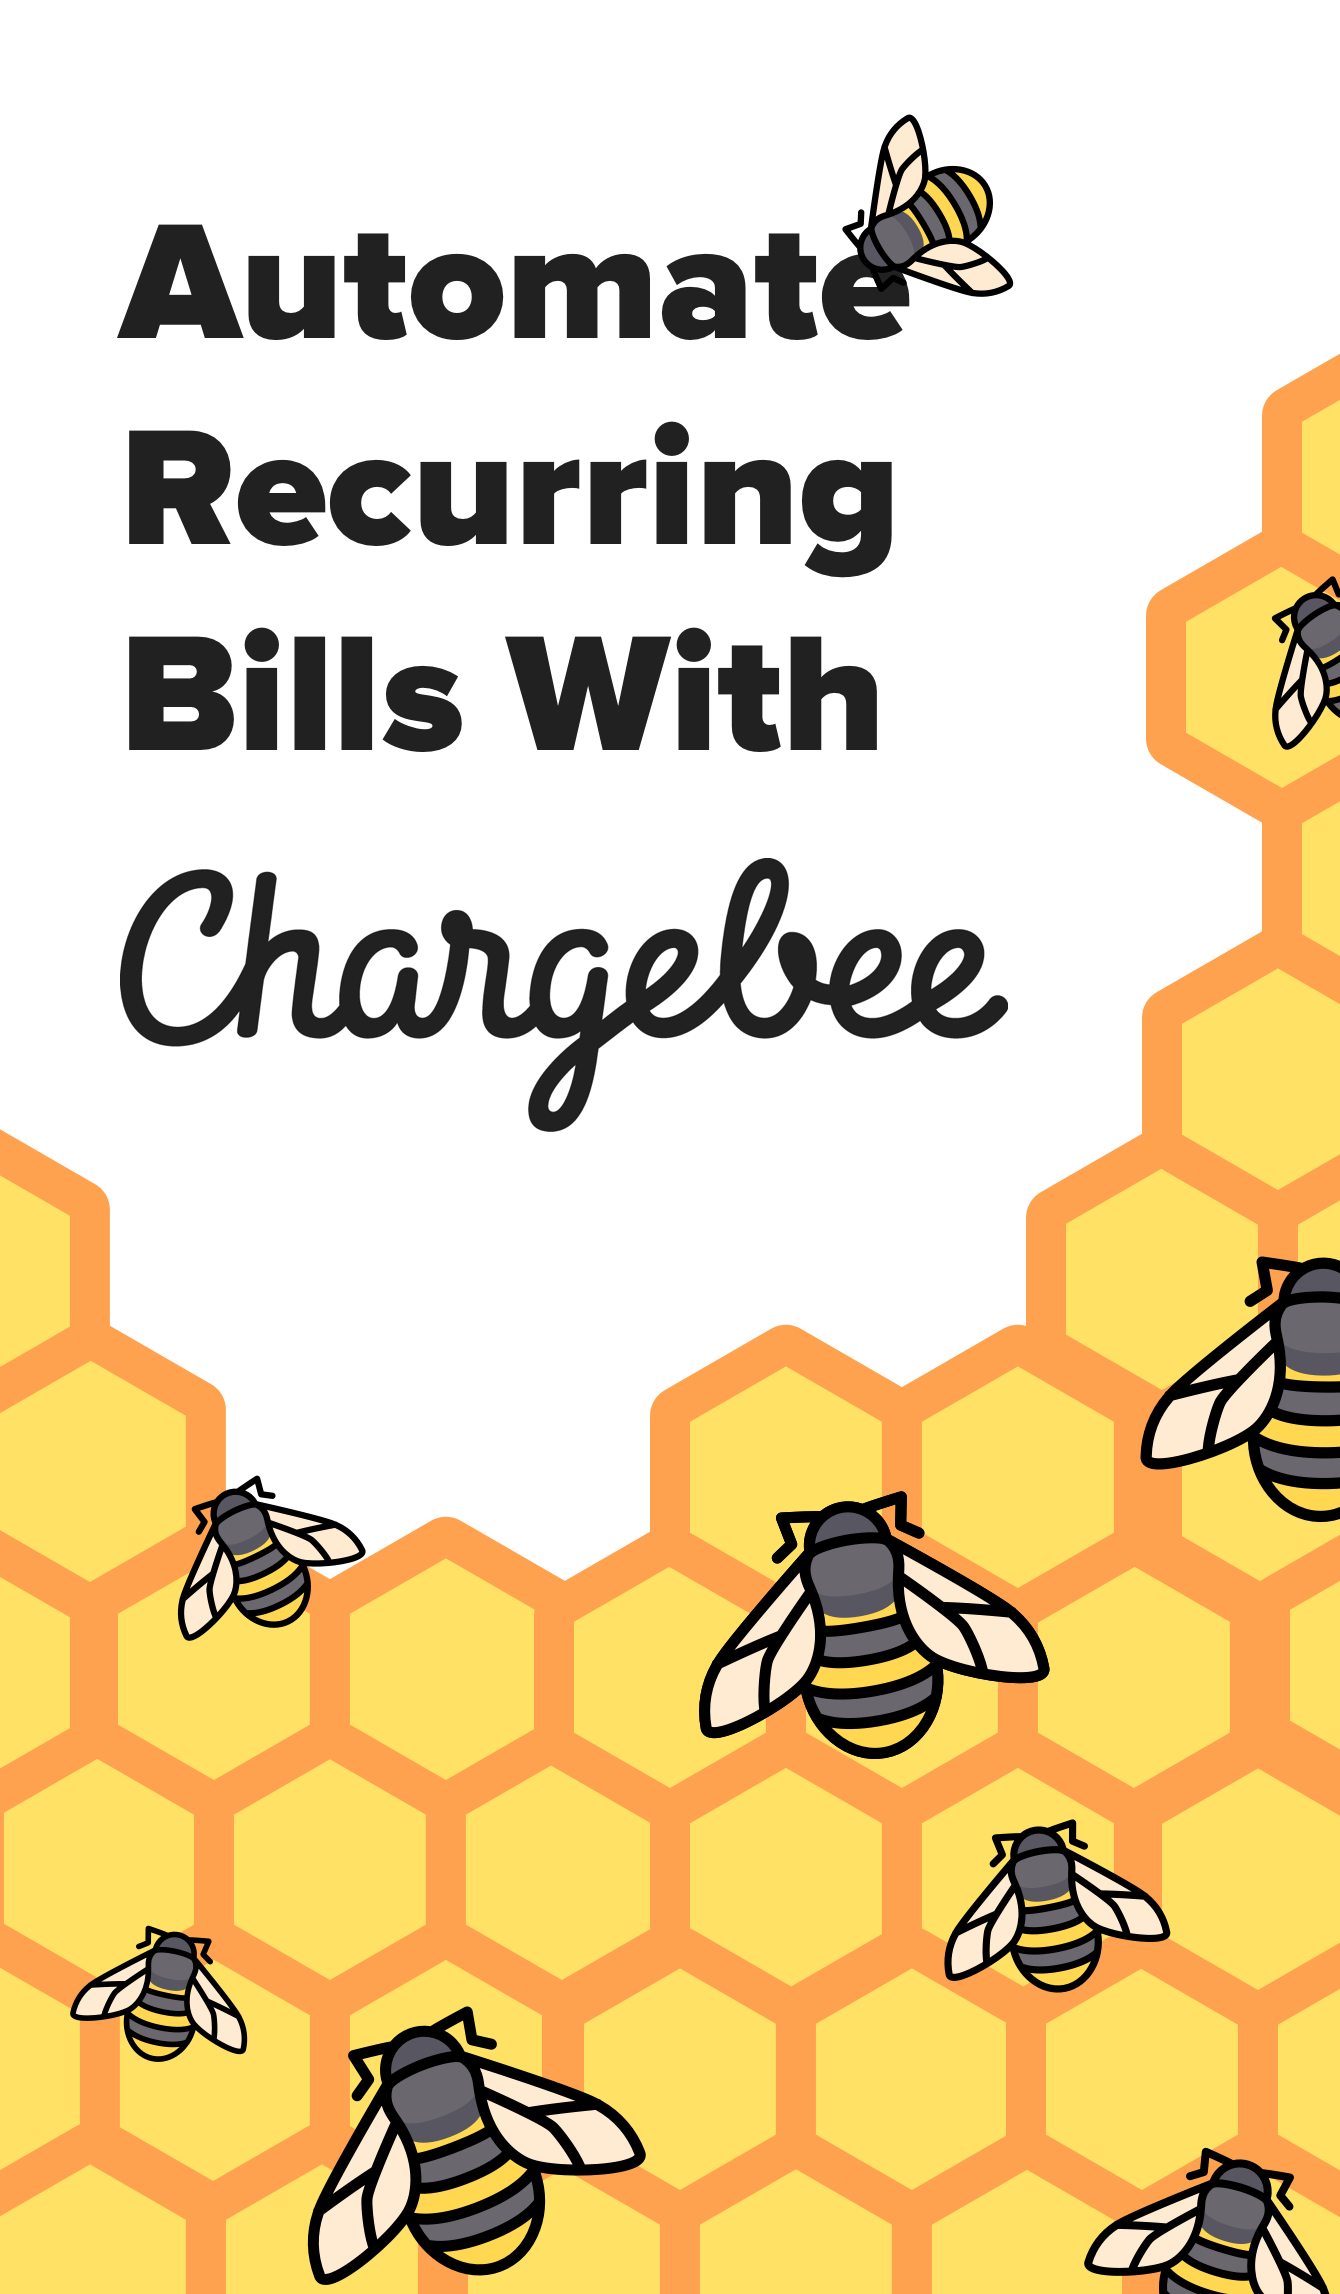 ChargeBee is a PCI Level 1 certified recurring billing platform for